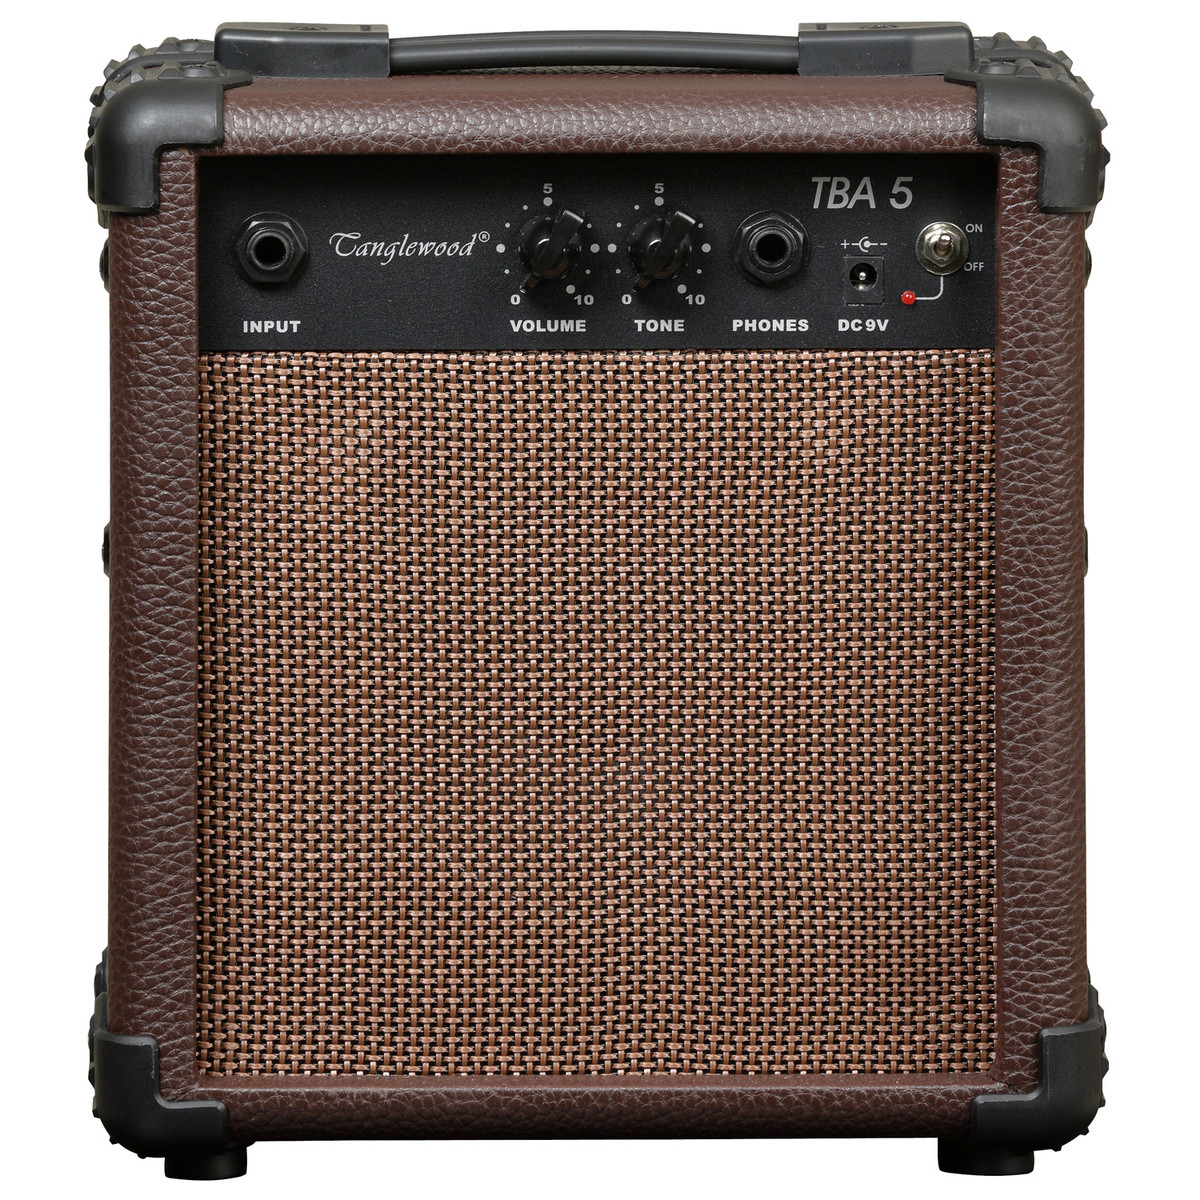 tanglewood tba5 battery powered amp at. Black Bedroom Furniture Sets. Home Design Ideas